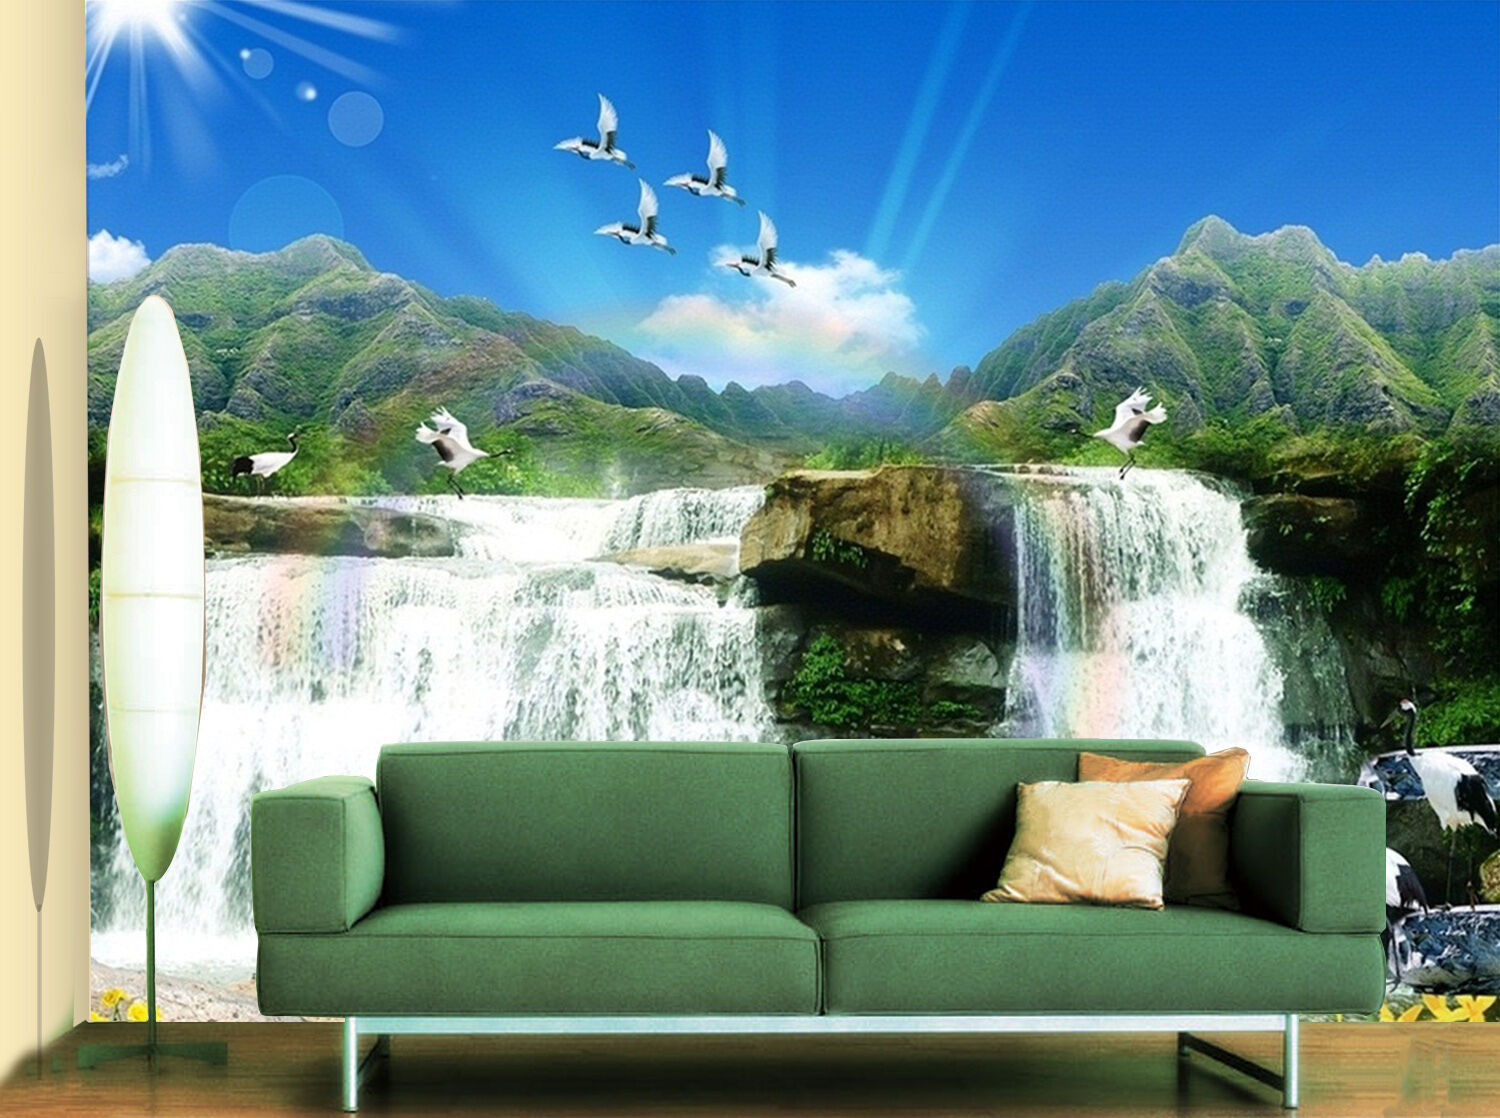 3D Nature Pouring Wall Paper Wall Print Decal Wall Deco Indoor Wall Murals